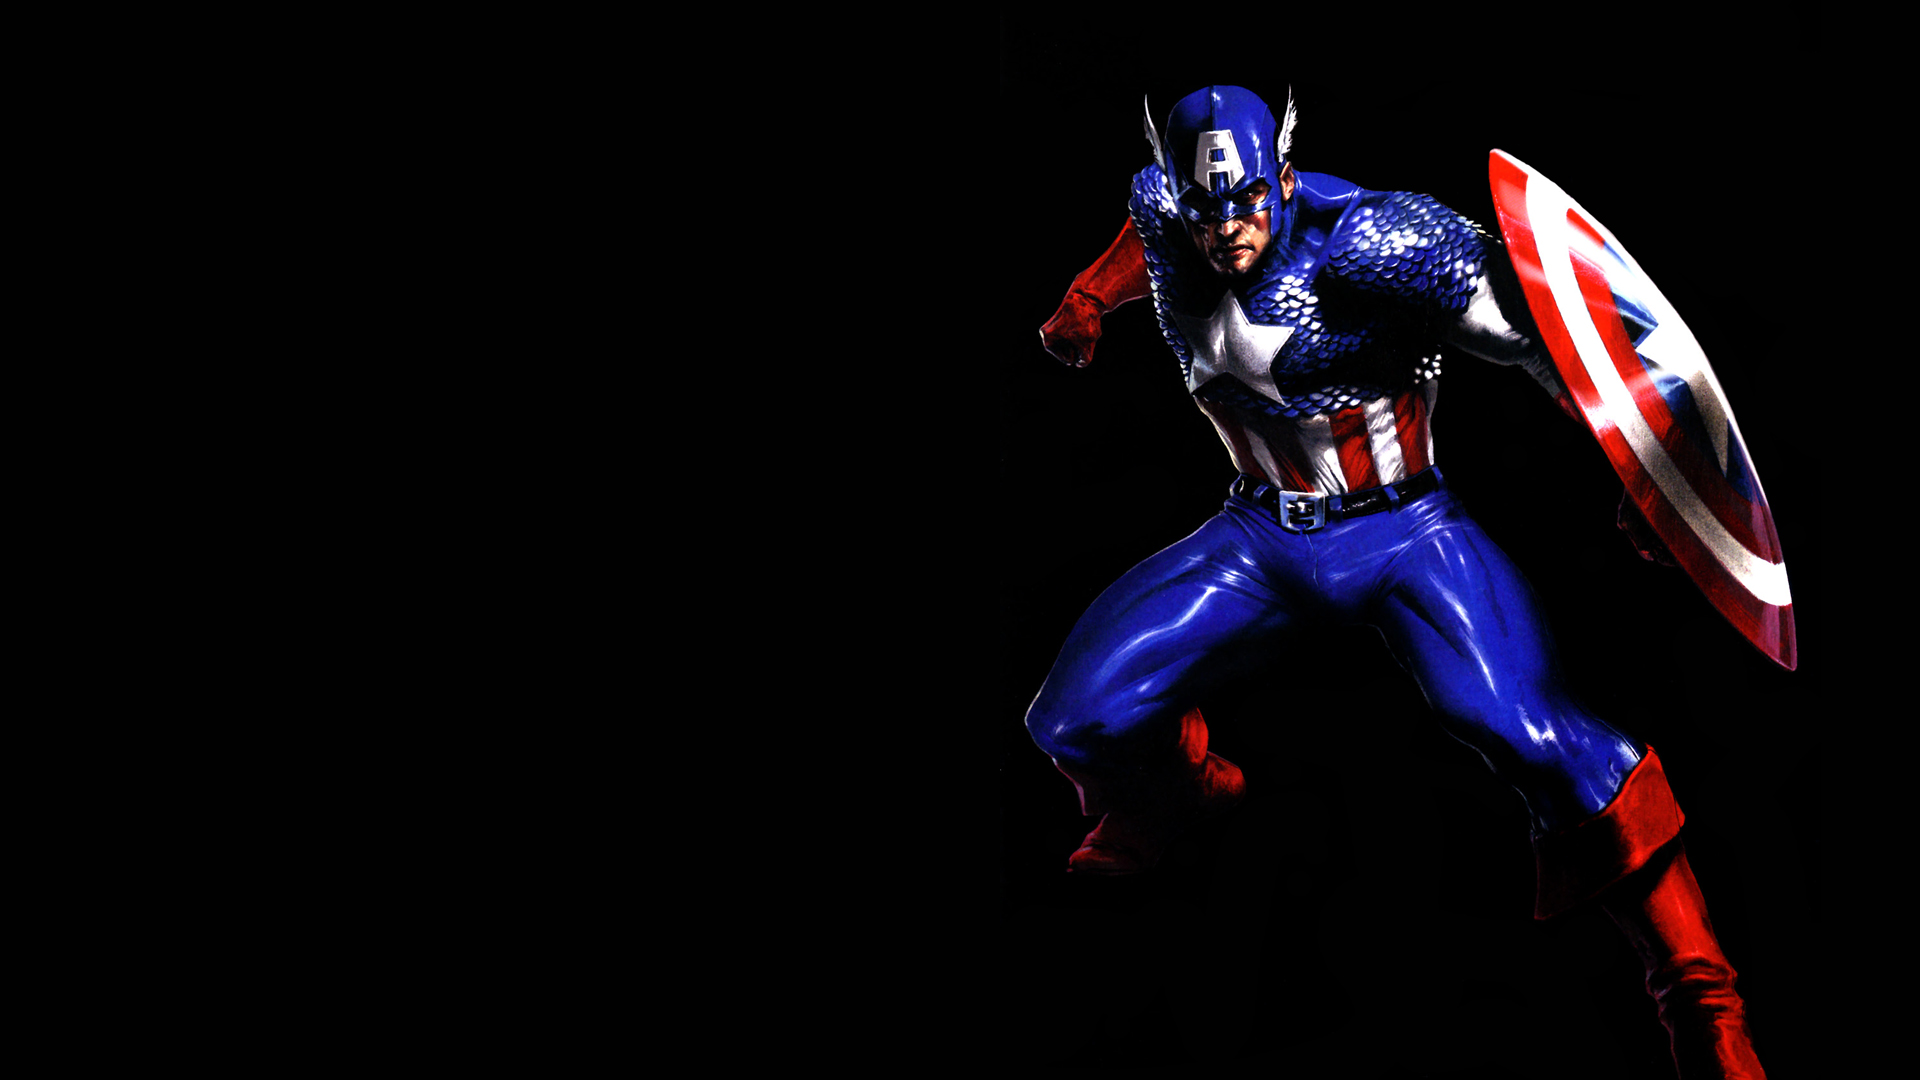 Club America Wallpapers 3d 35 Captain America Wallpaper For Desktop